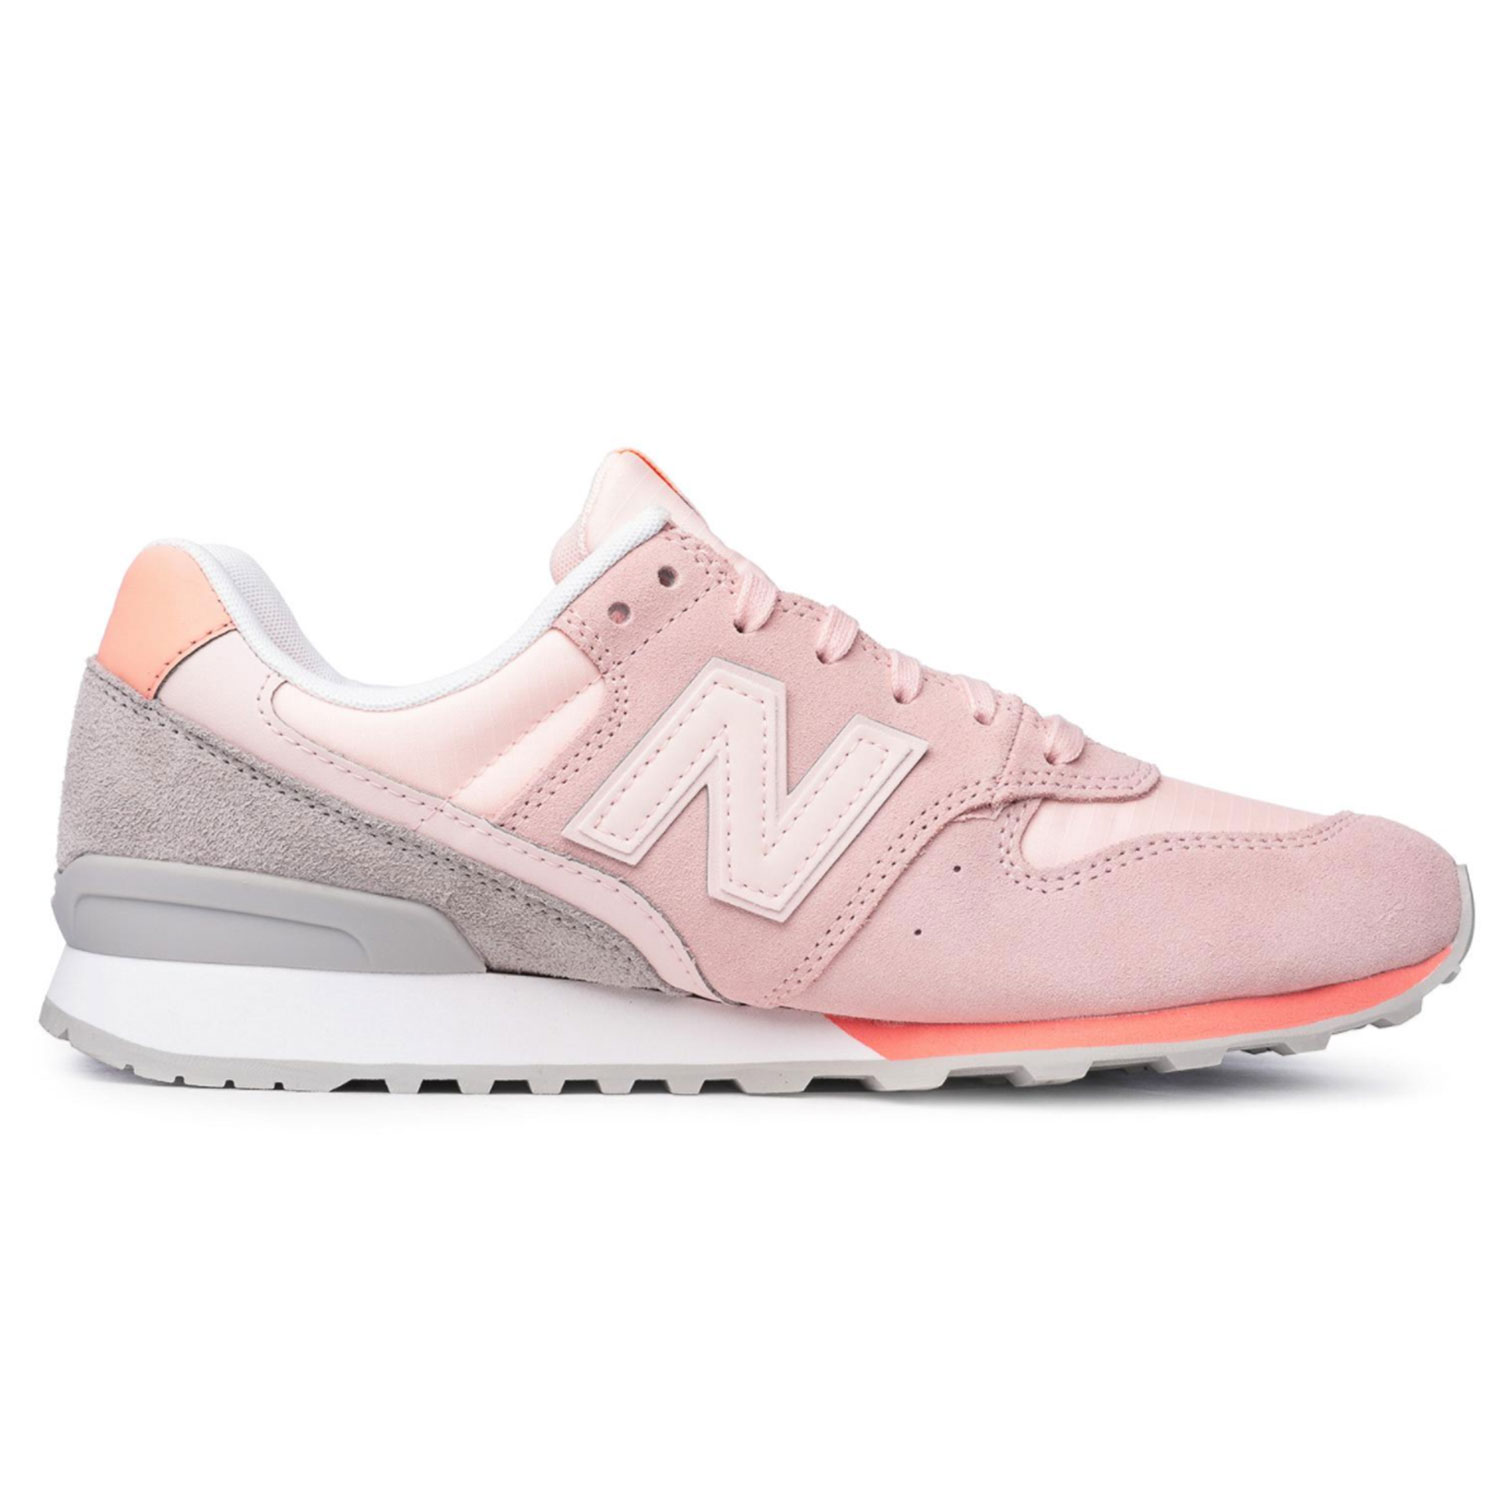 996 new balance damen grau